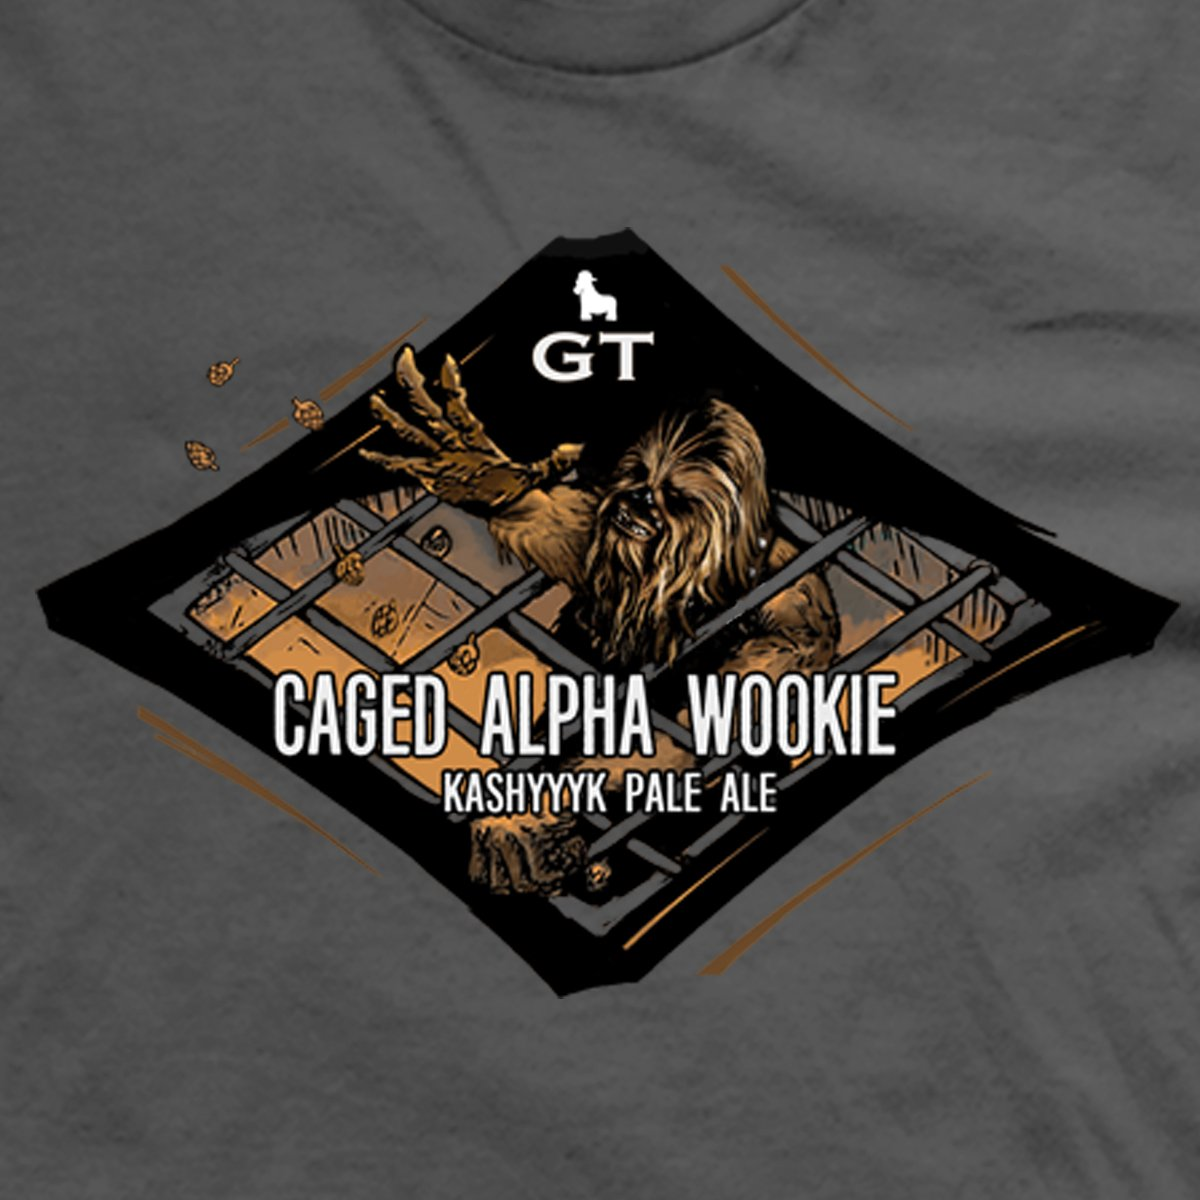 Caged Alpha Wookie t-shirt